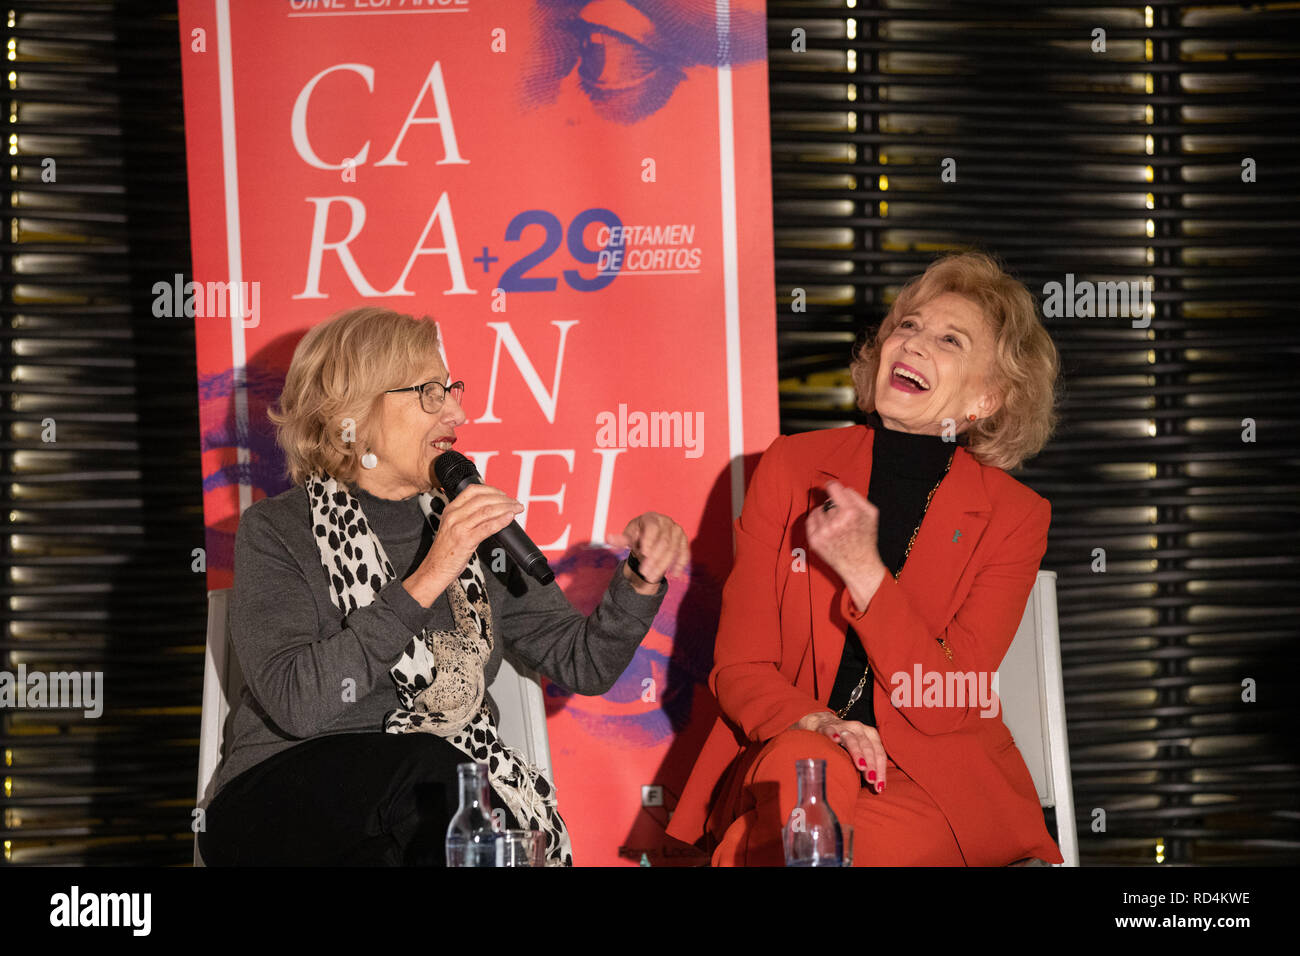 Madrid, Spain. 17th Jan 2019. Manuela Carmena speaking with Marisa Paredes during the act. The Carabanchel Film Week has become one of the longest-running exhibitions in Madrid and has made it consolidate as the prelude to the Goya Awards. Credit: Jesús Hellin/Alamy Live News - Stock Image